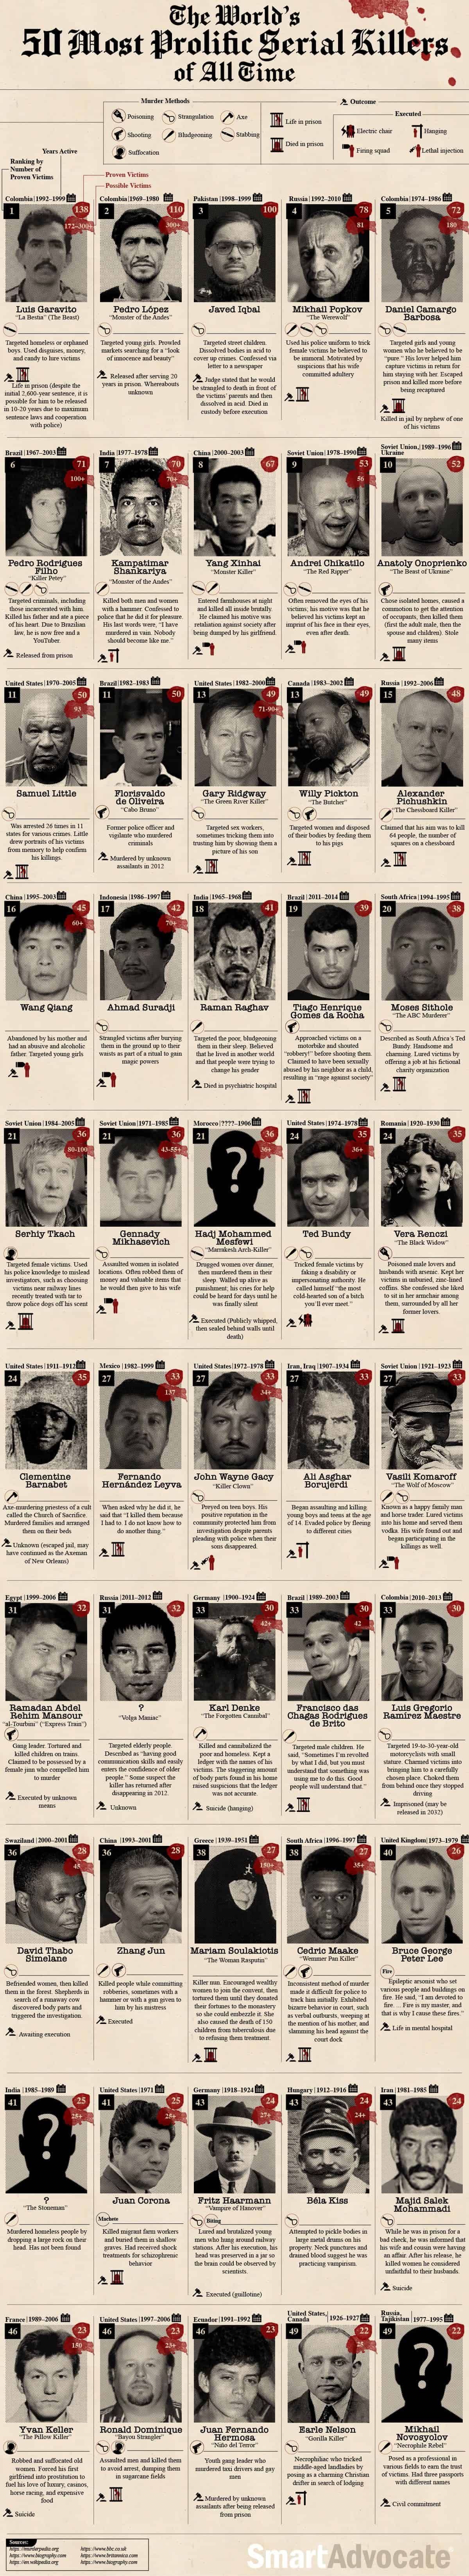 The Worlds Most Prolific Serial Killers of All Time